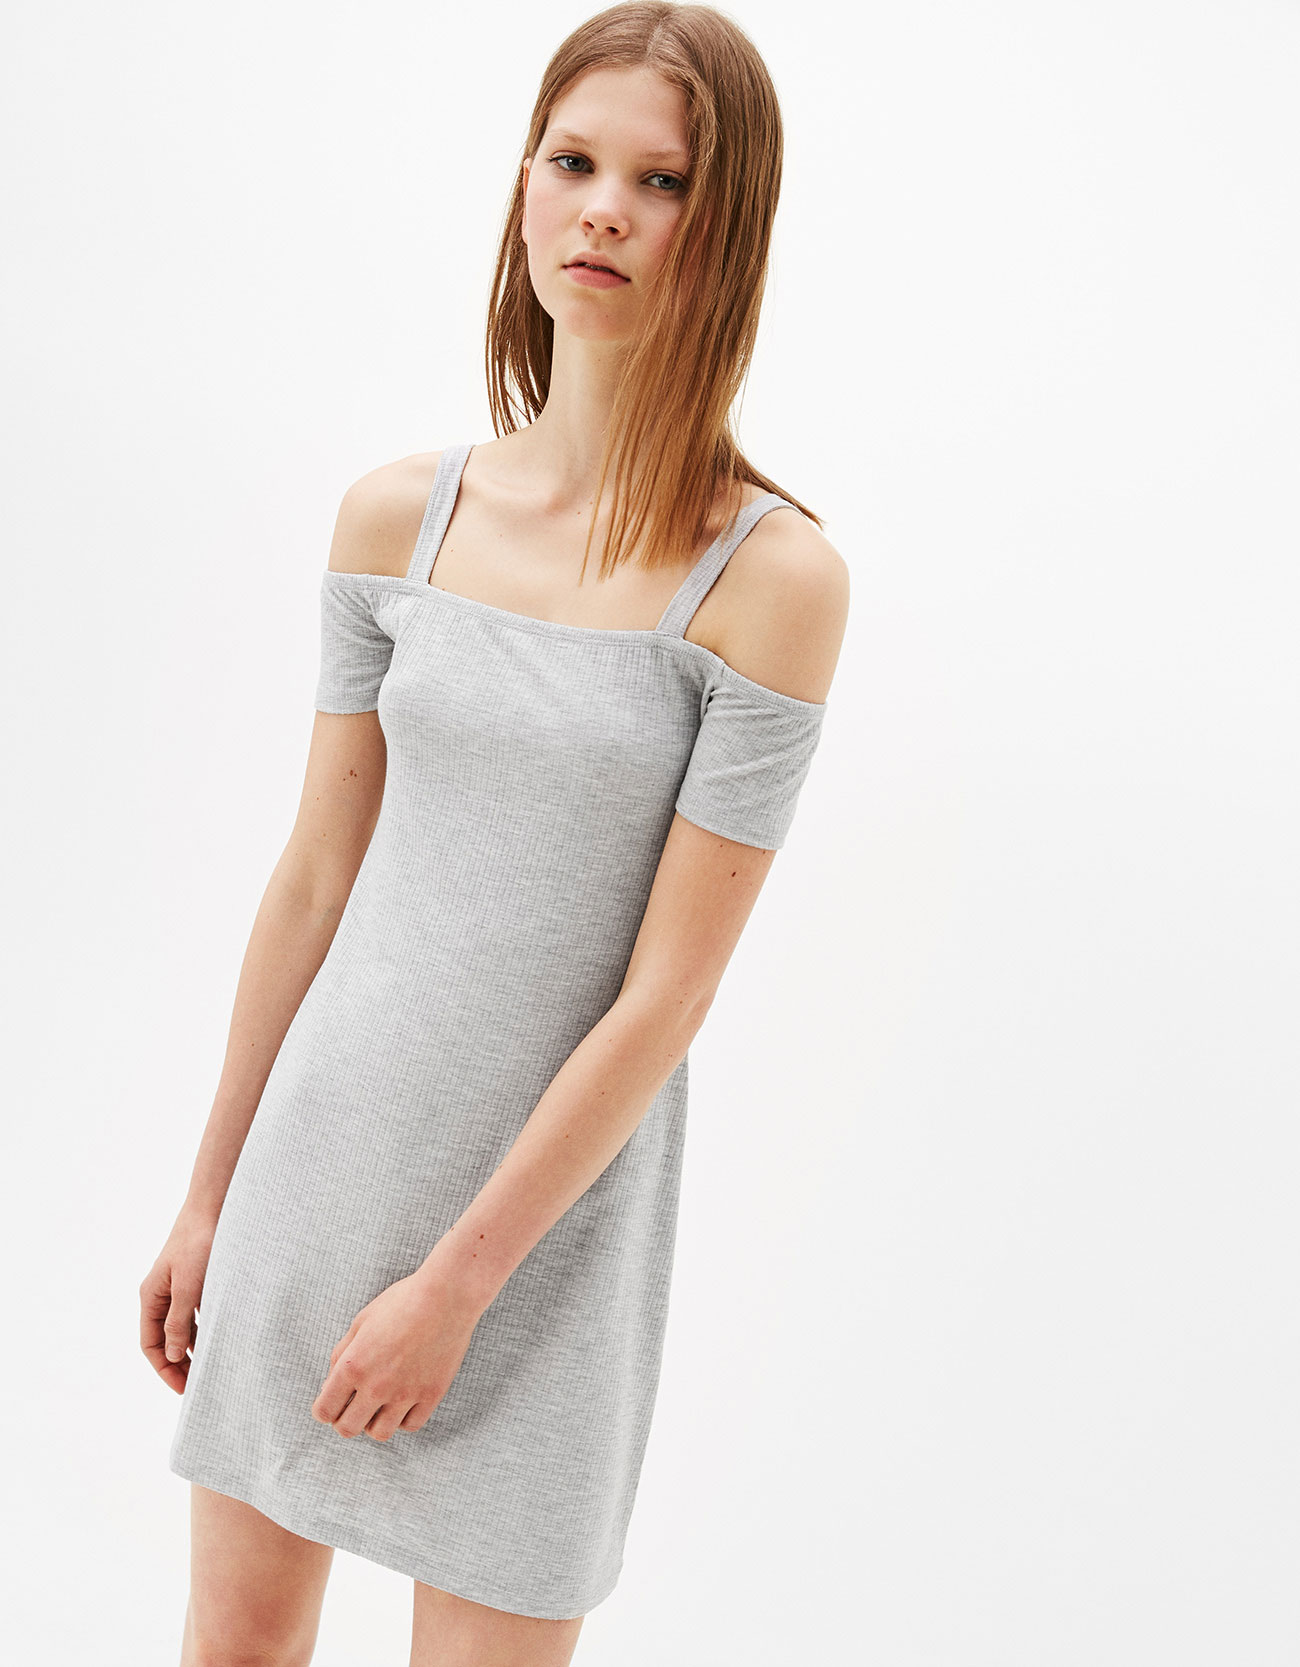 Strappy off-the-shoulder dress - Dresses - Bershka Indonesia